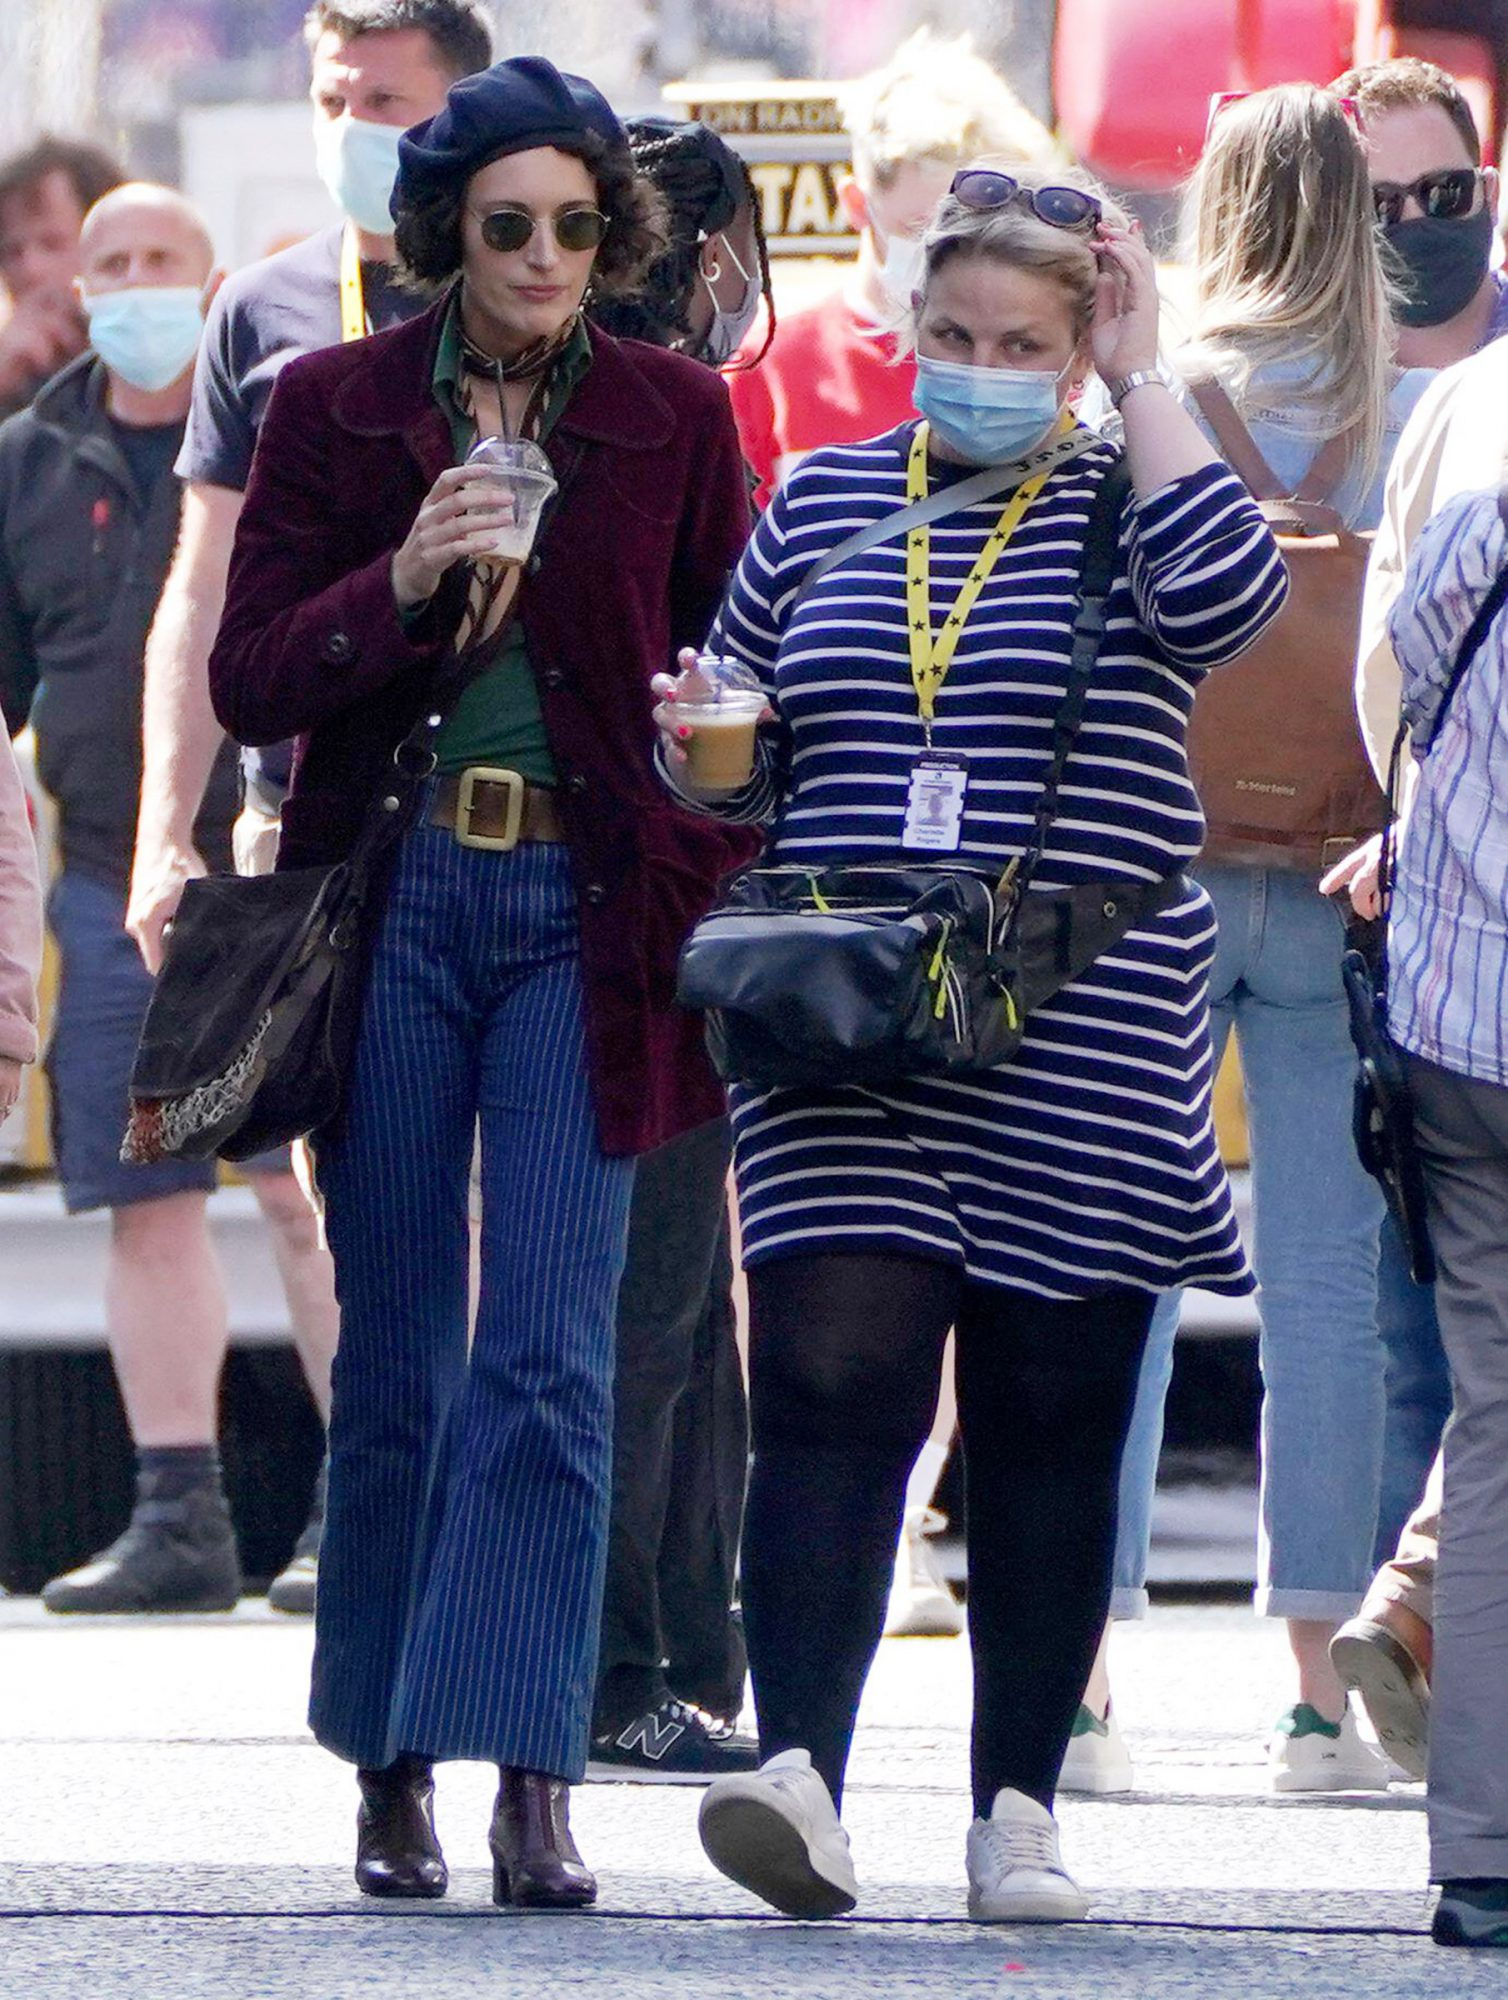 Actor Phoebe Waller-Bridge(L) on Cochrane Street in Glasgow city centre during filming for what is thought to be the new Indiana Jones 5 movie starring Harrison Ford. Picture date: Wednesday July 14, 2021.